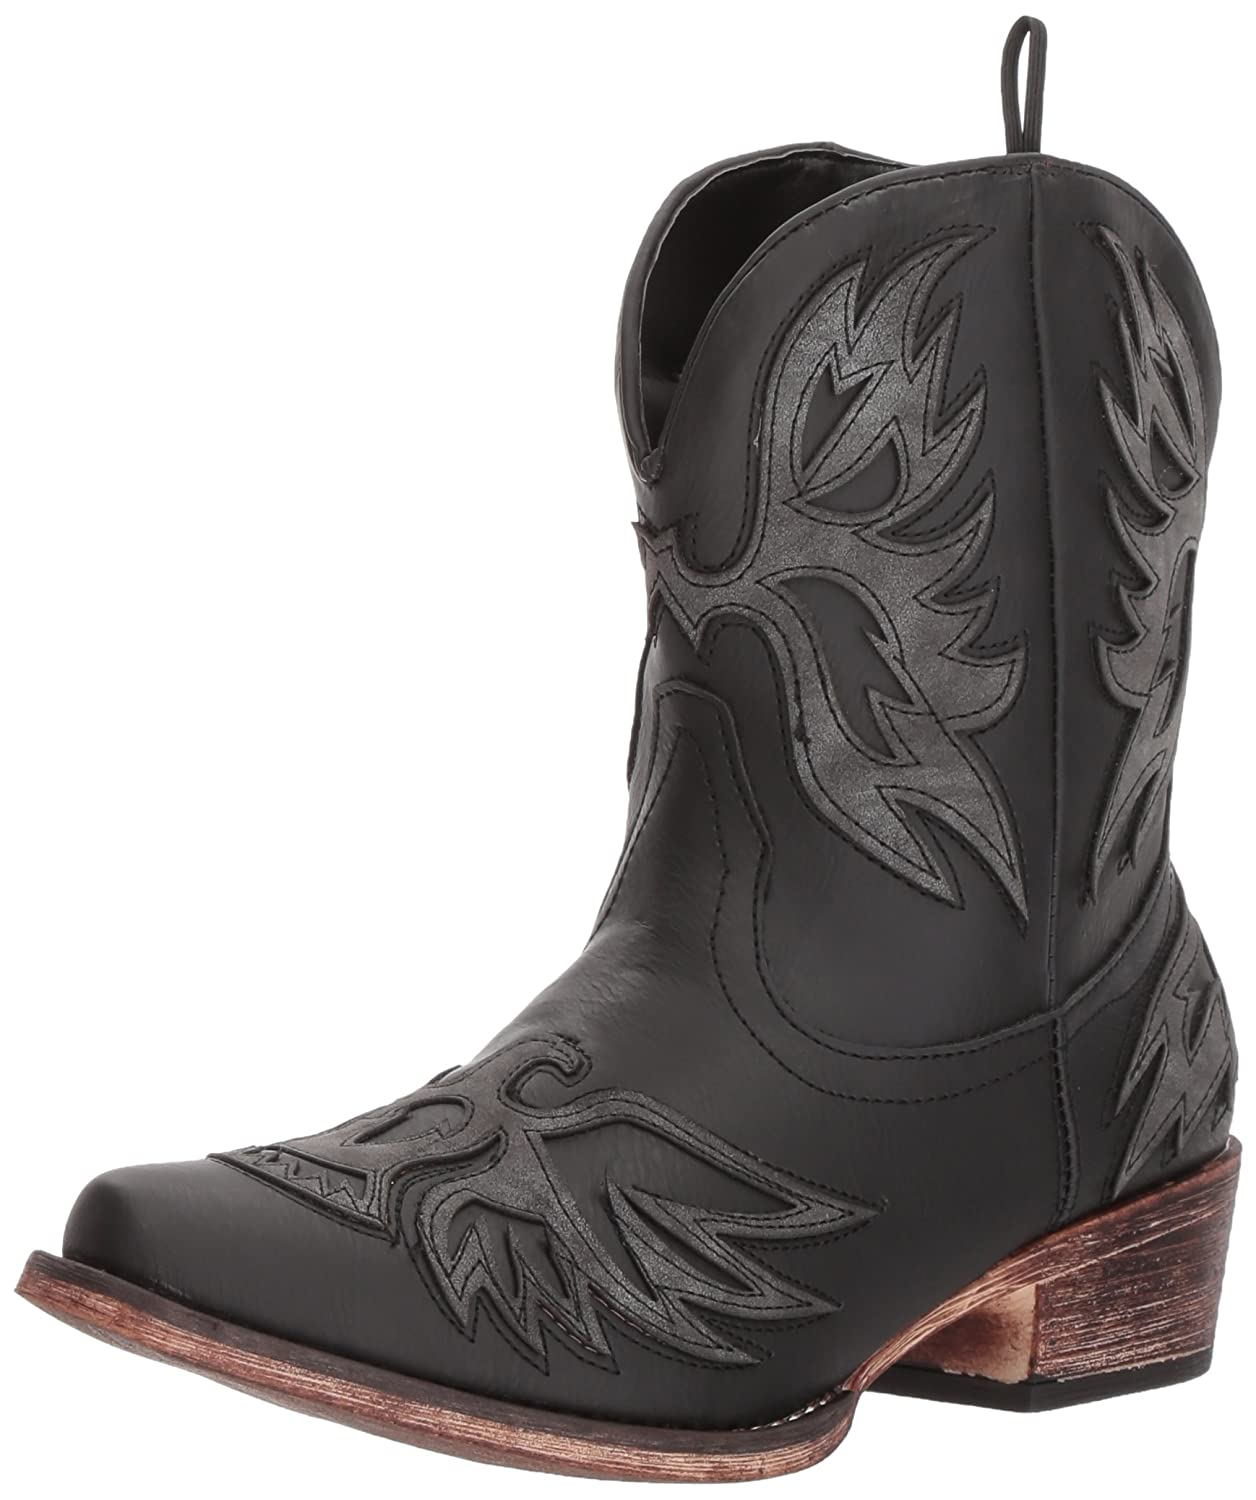 Roper Women's Amelia Western Boot B074D49GB4 10.5 B(M) US|Black